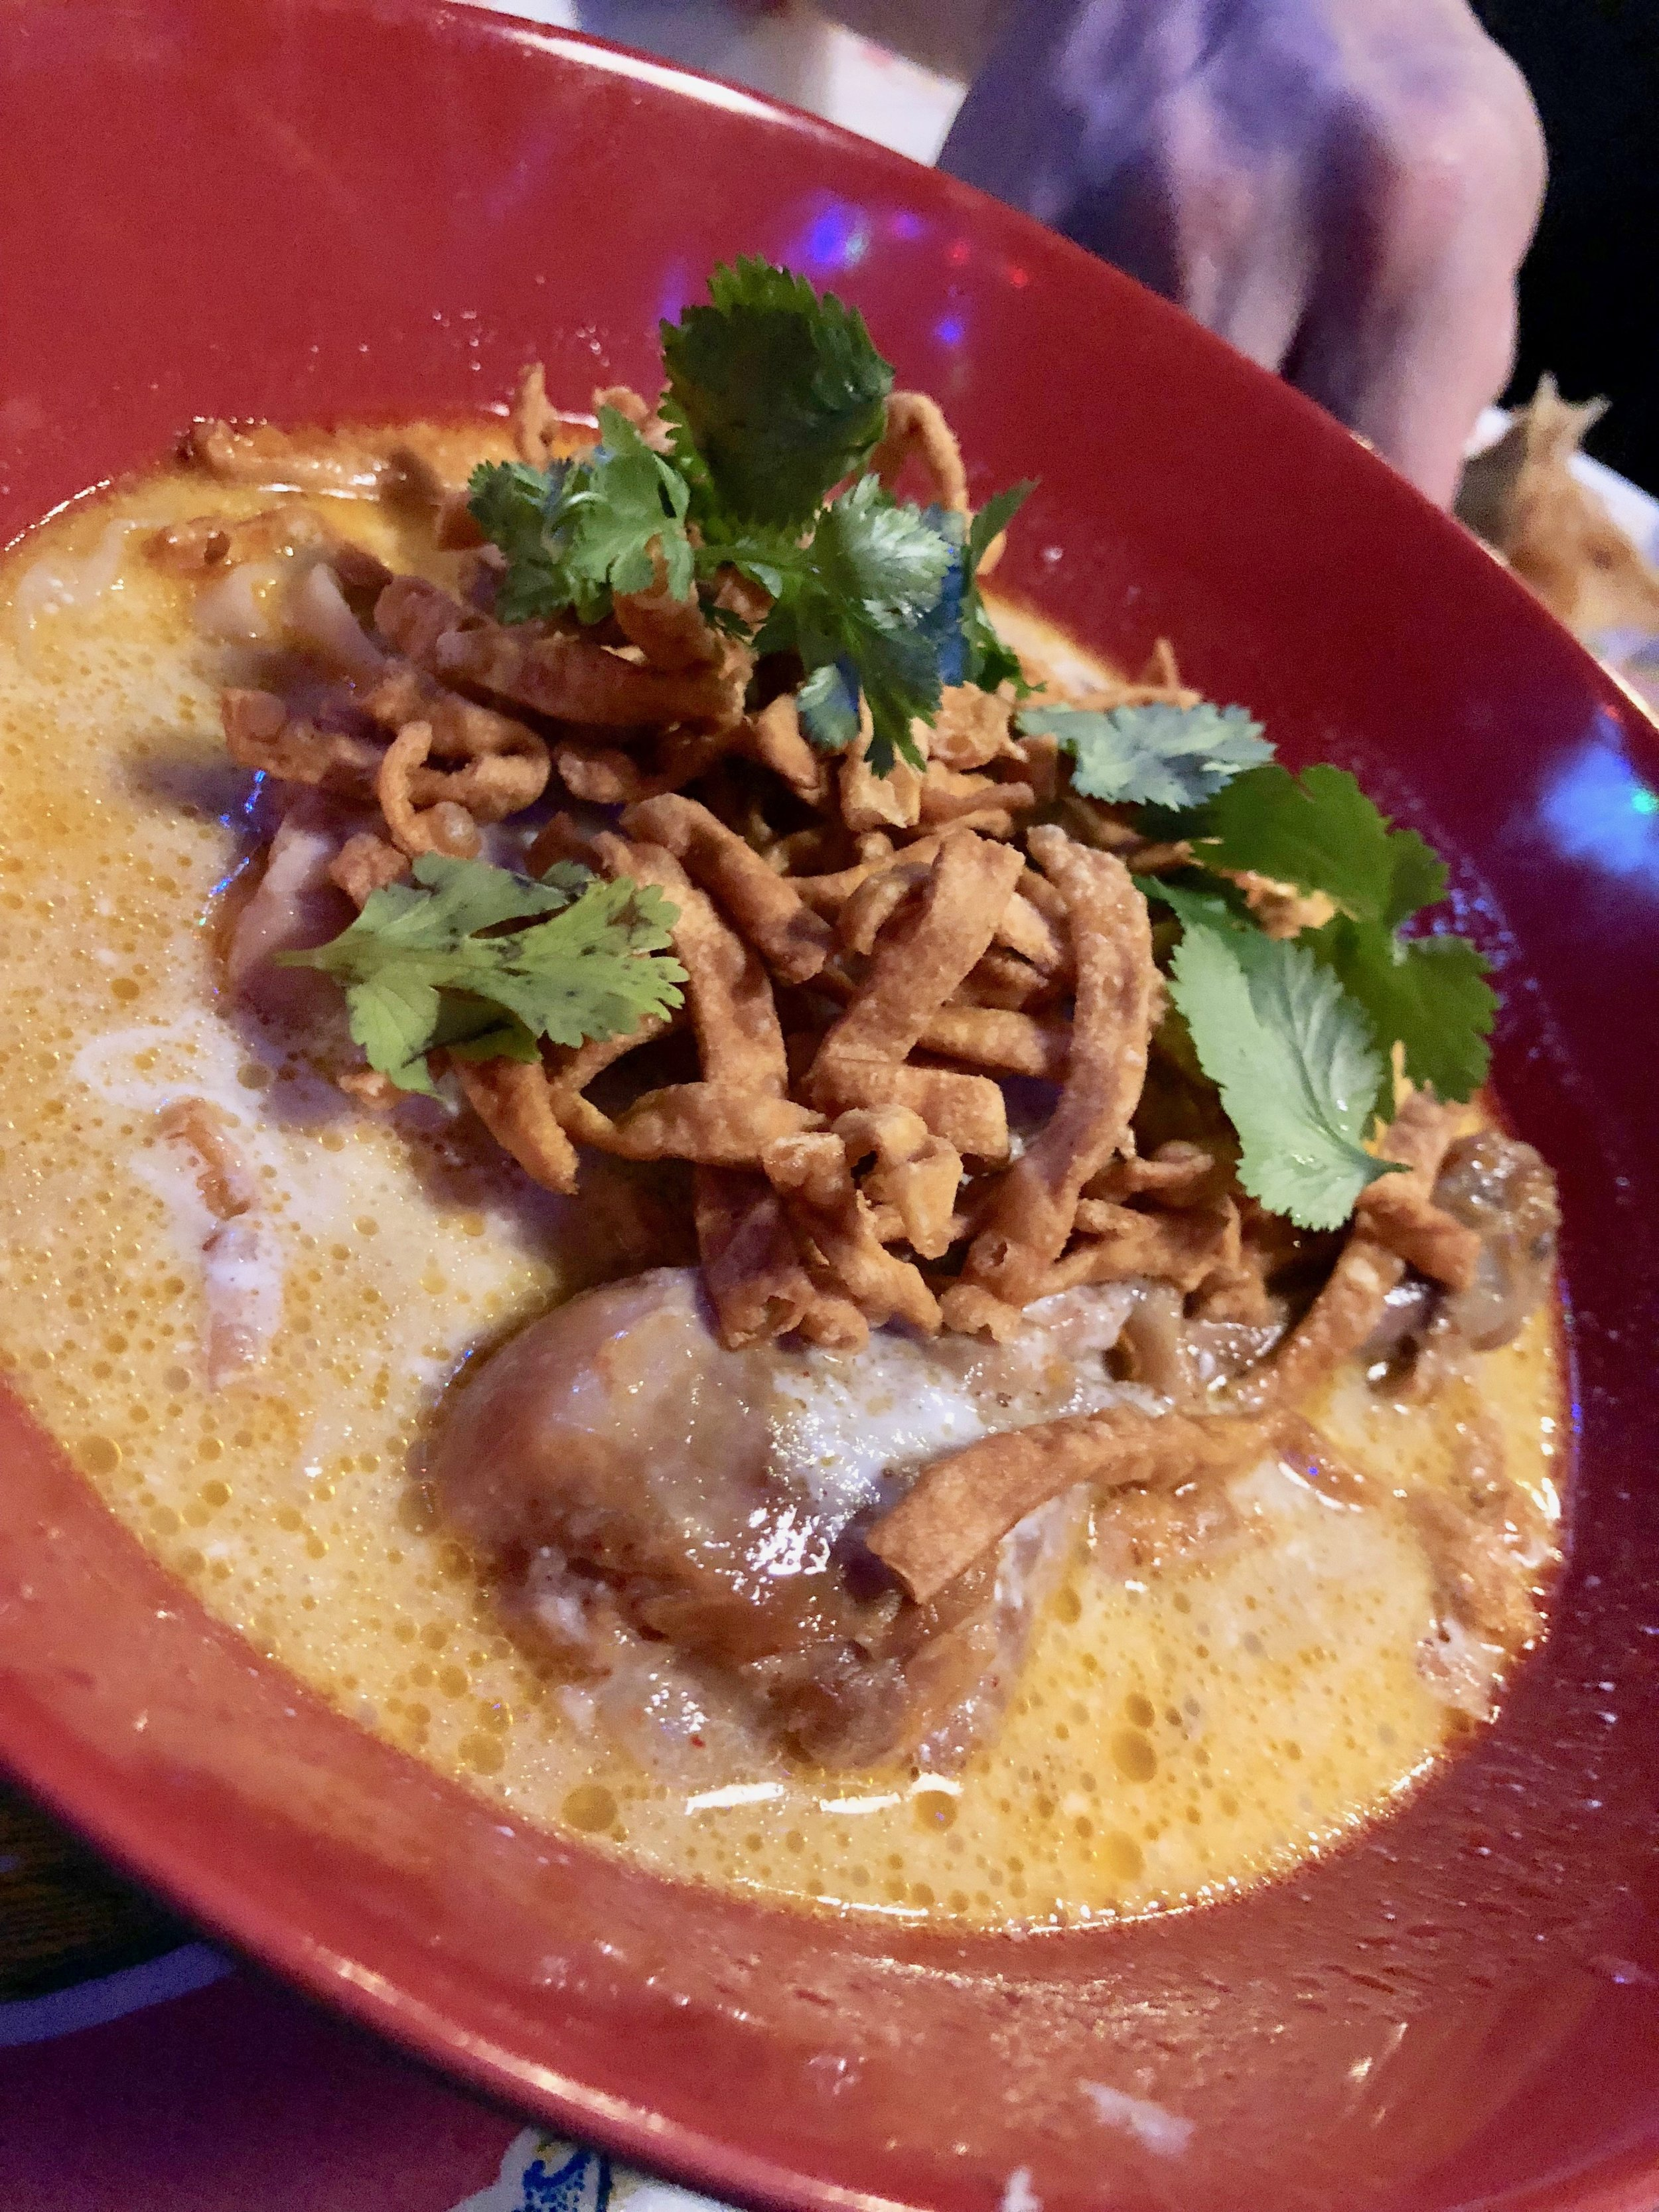 A mild chicken curry soup called Khao Soi Kai at Pok Pok  I spot knuckles.